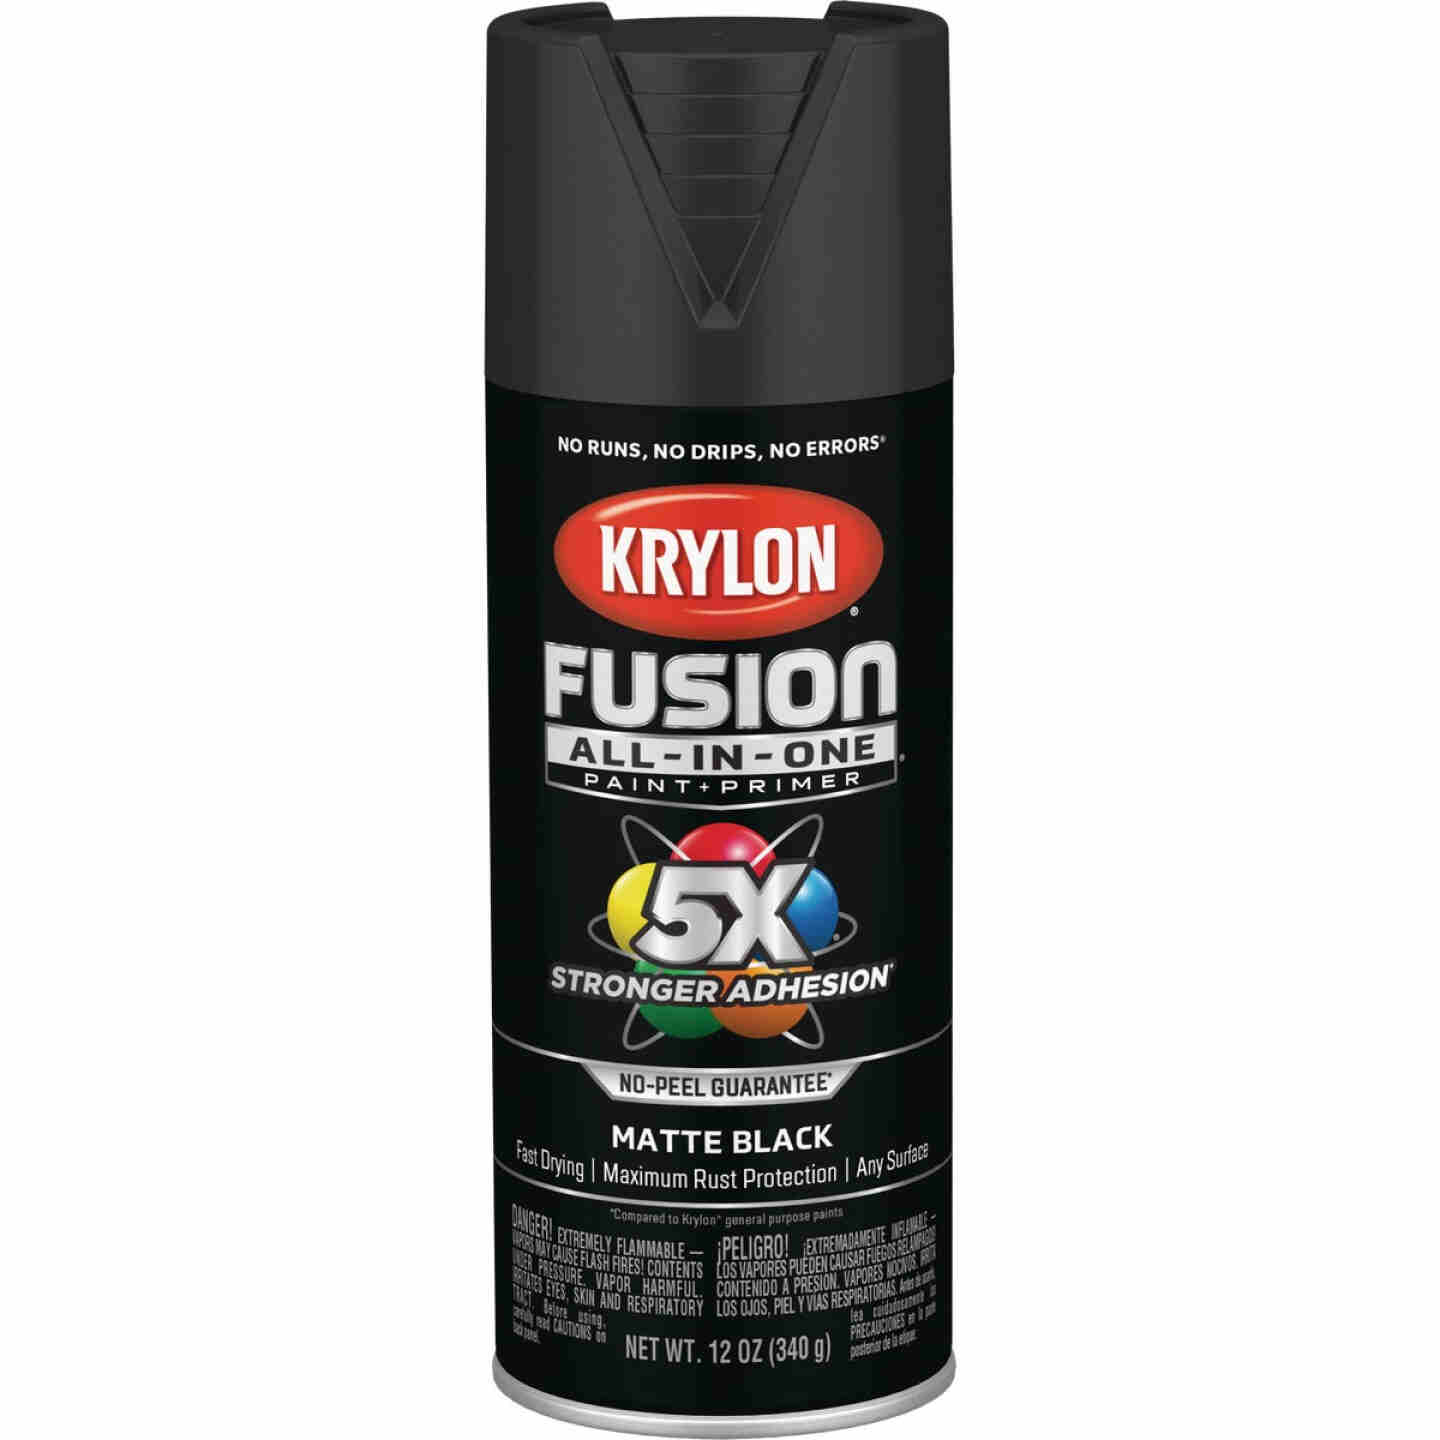 Krylon Fusion All-In-One Matte Spray Paint & Primer, Black Image 1